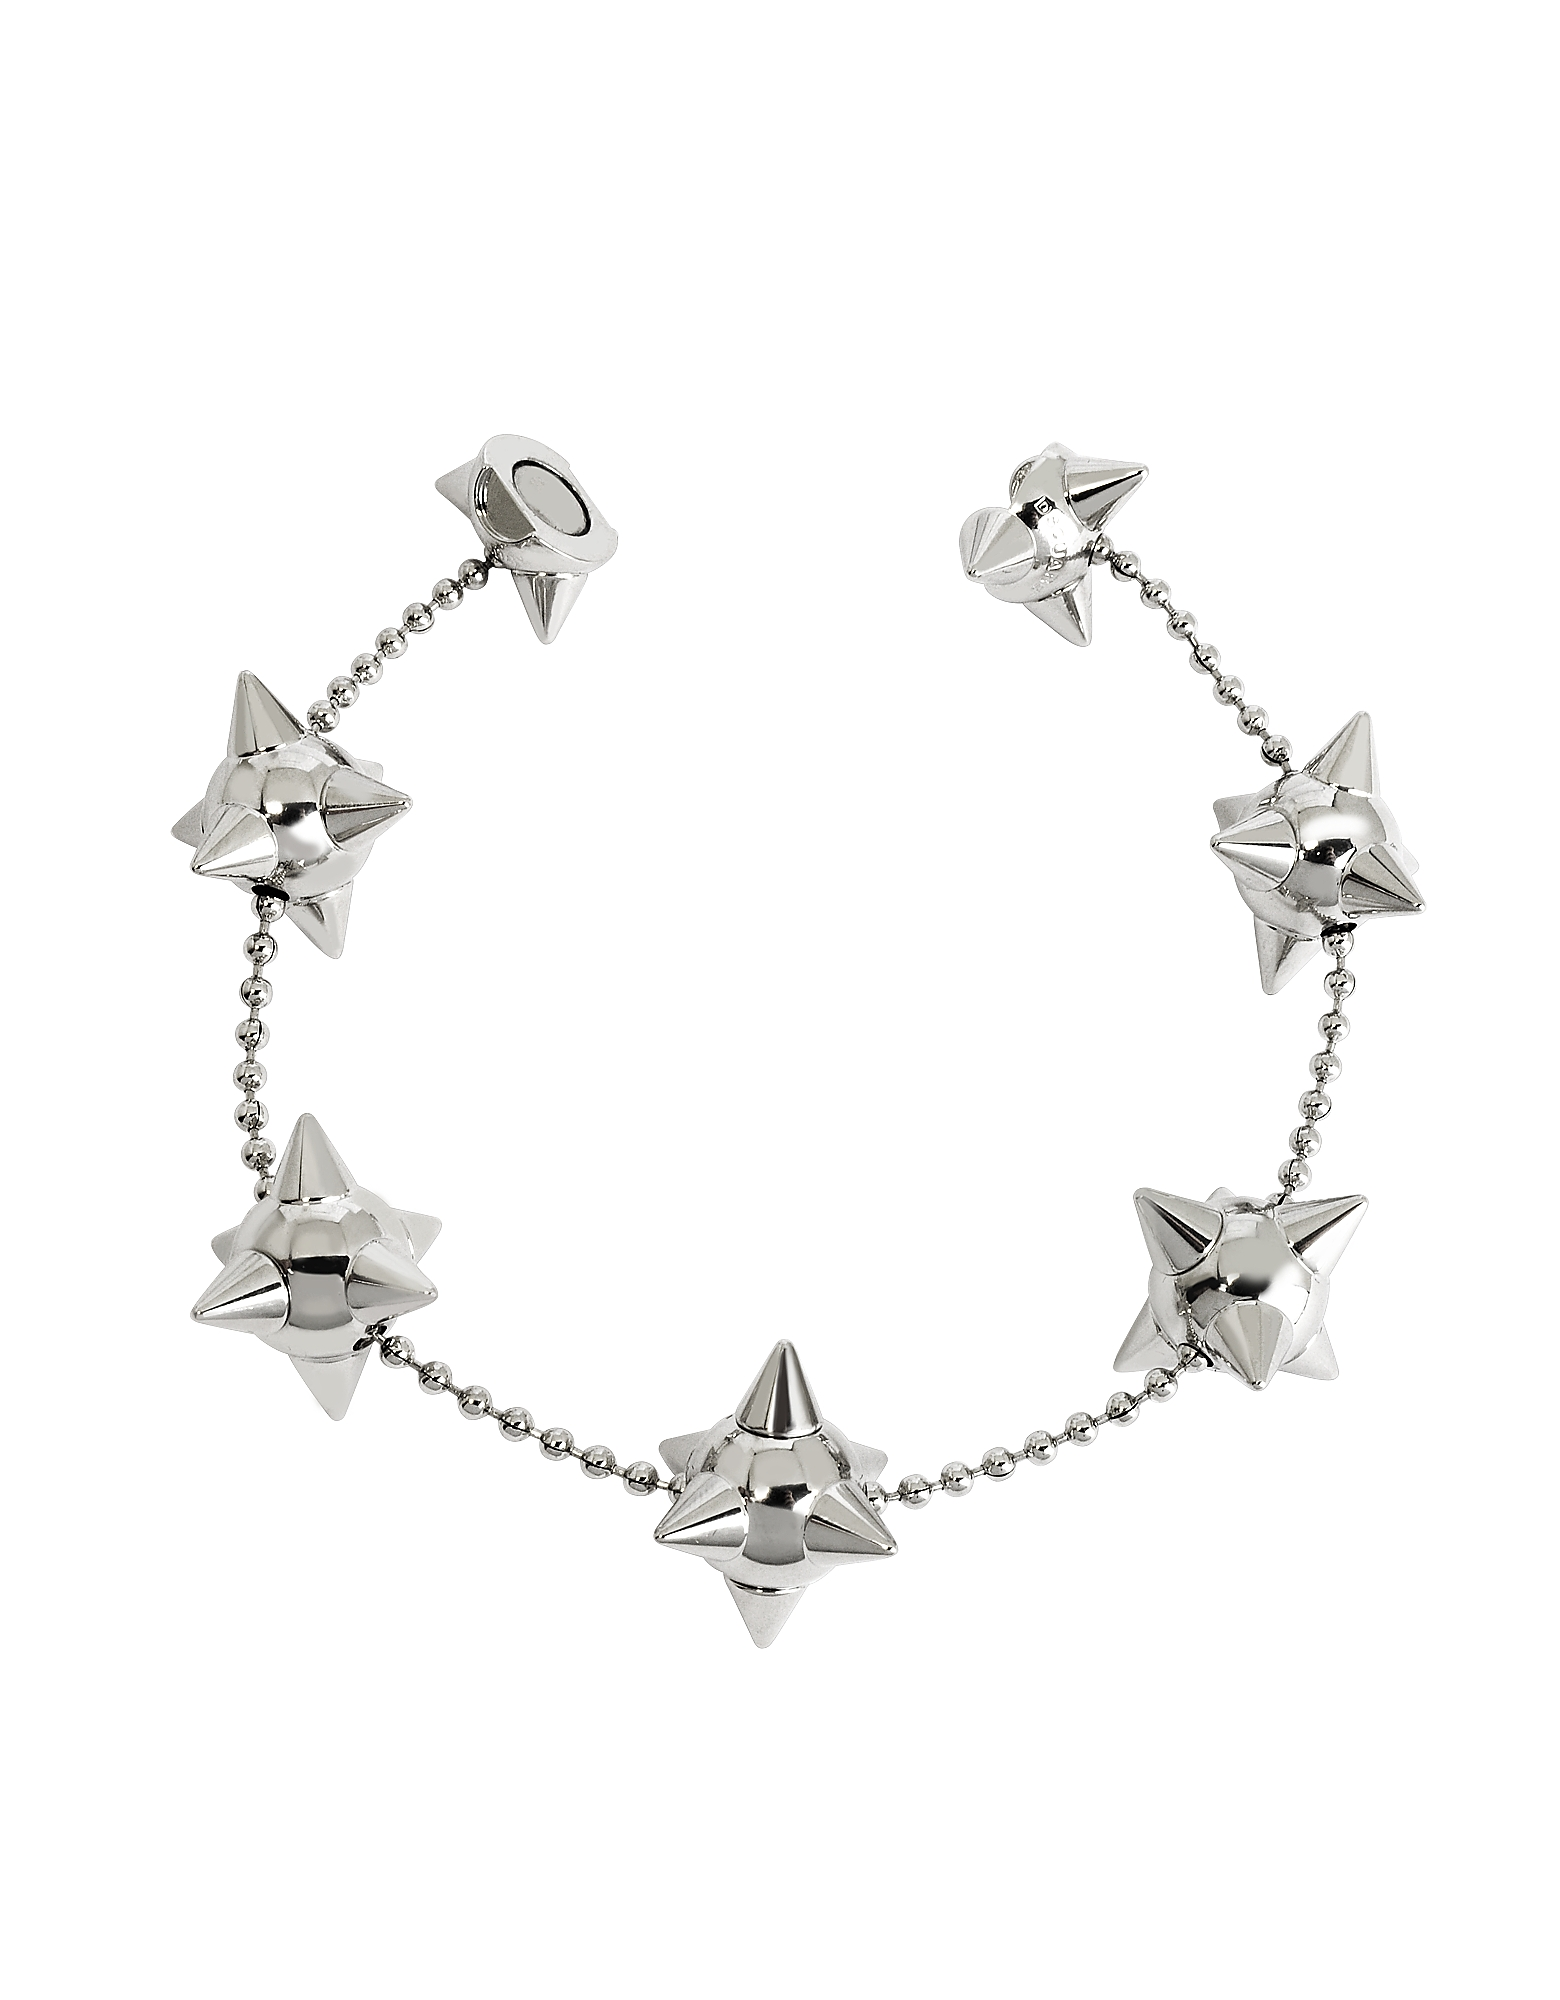 DSquared2 Bracelets, Pierce Me Palladium Plated Metal Spiked Chain Armlet